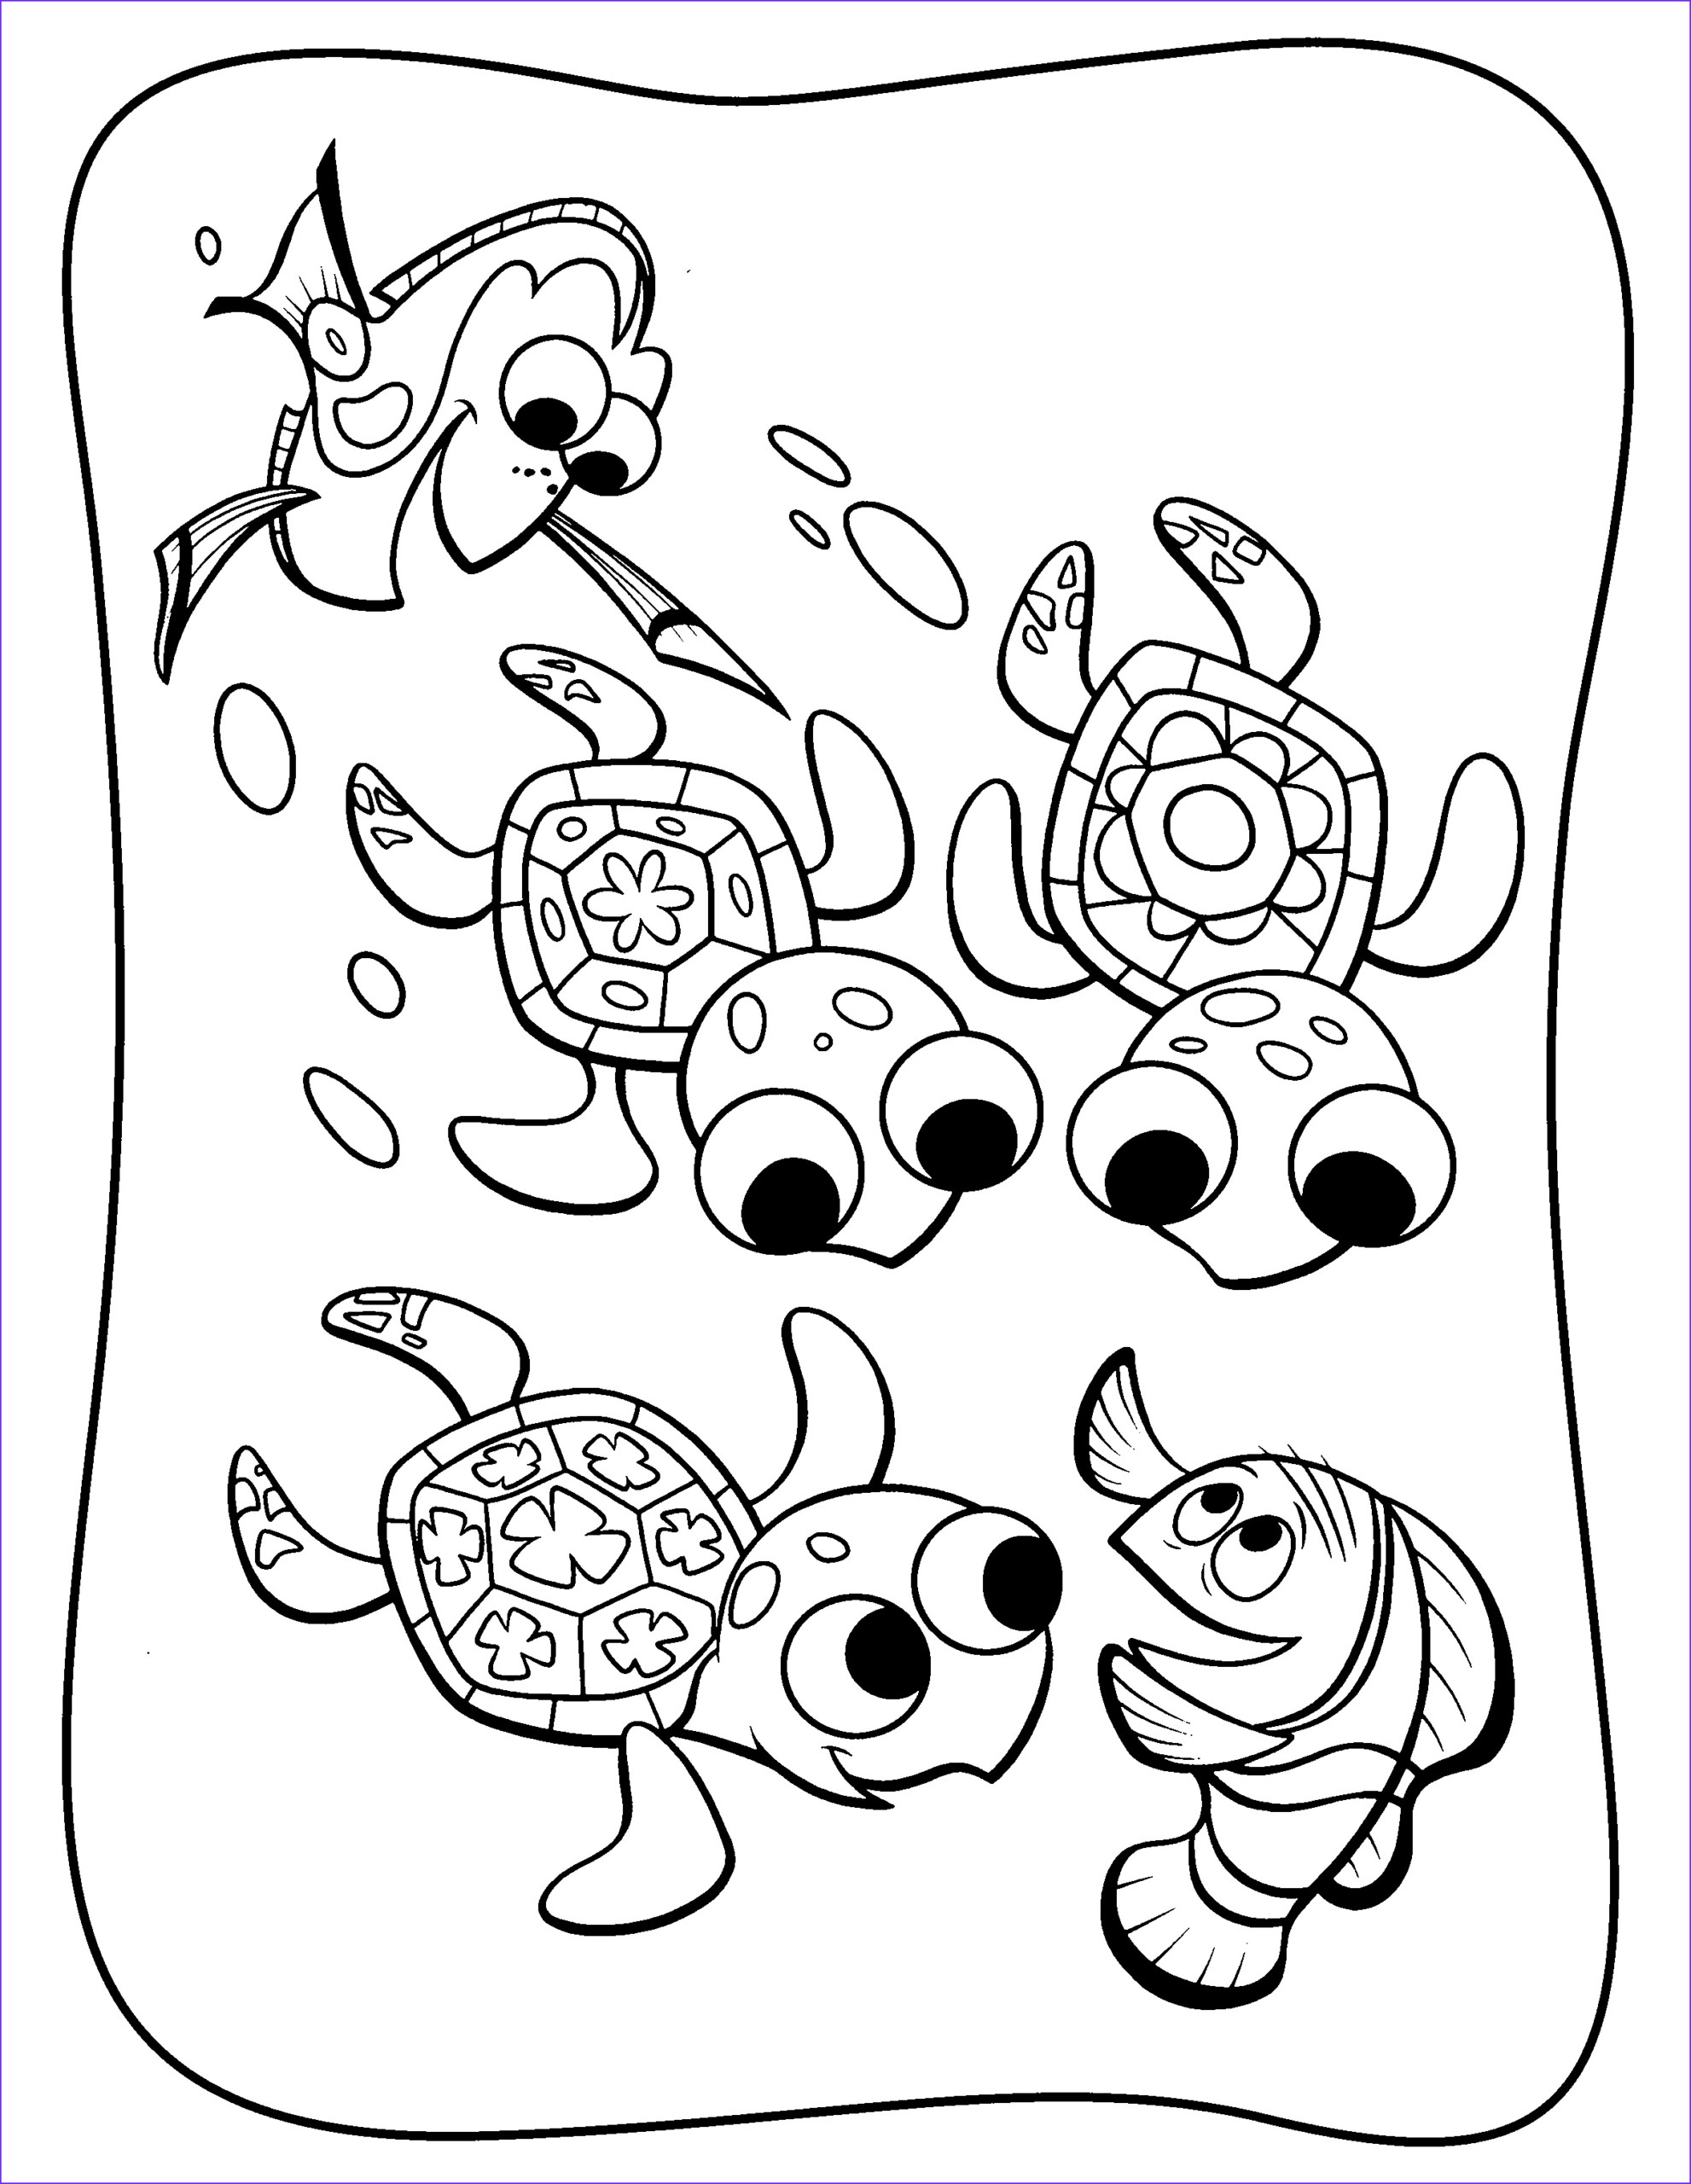 Coloring Pictures for Kids Best Of Photos Dory Coloring Pages Best Coloring Pages for Kids